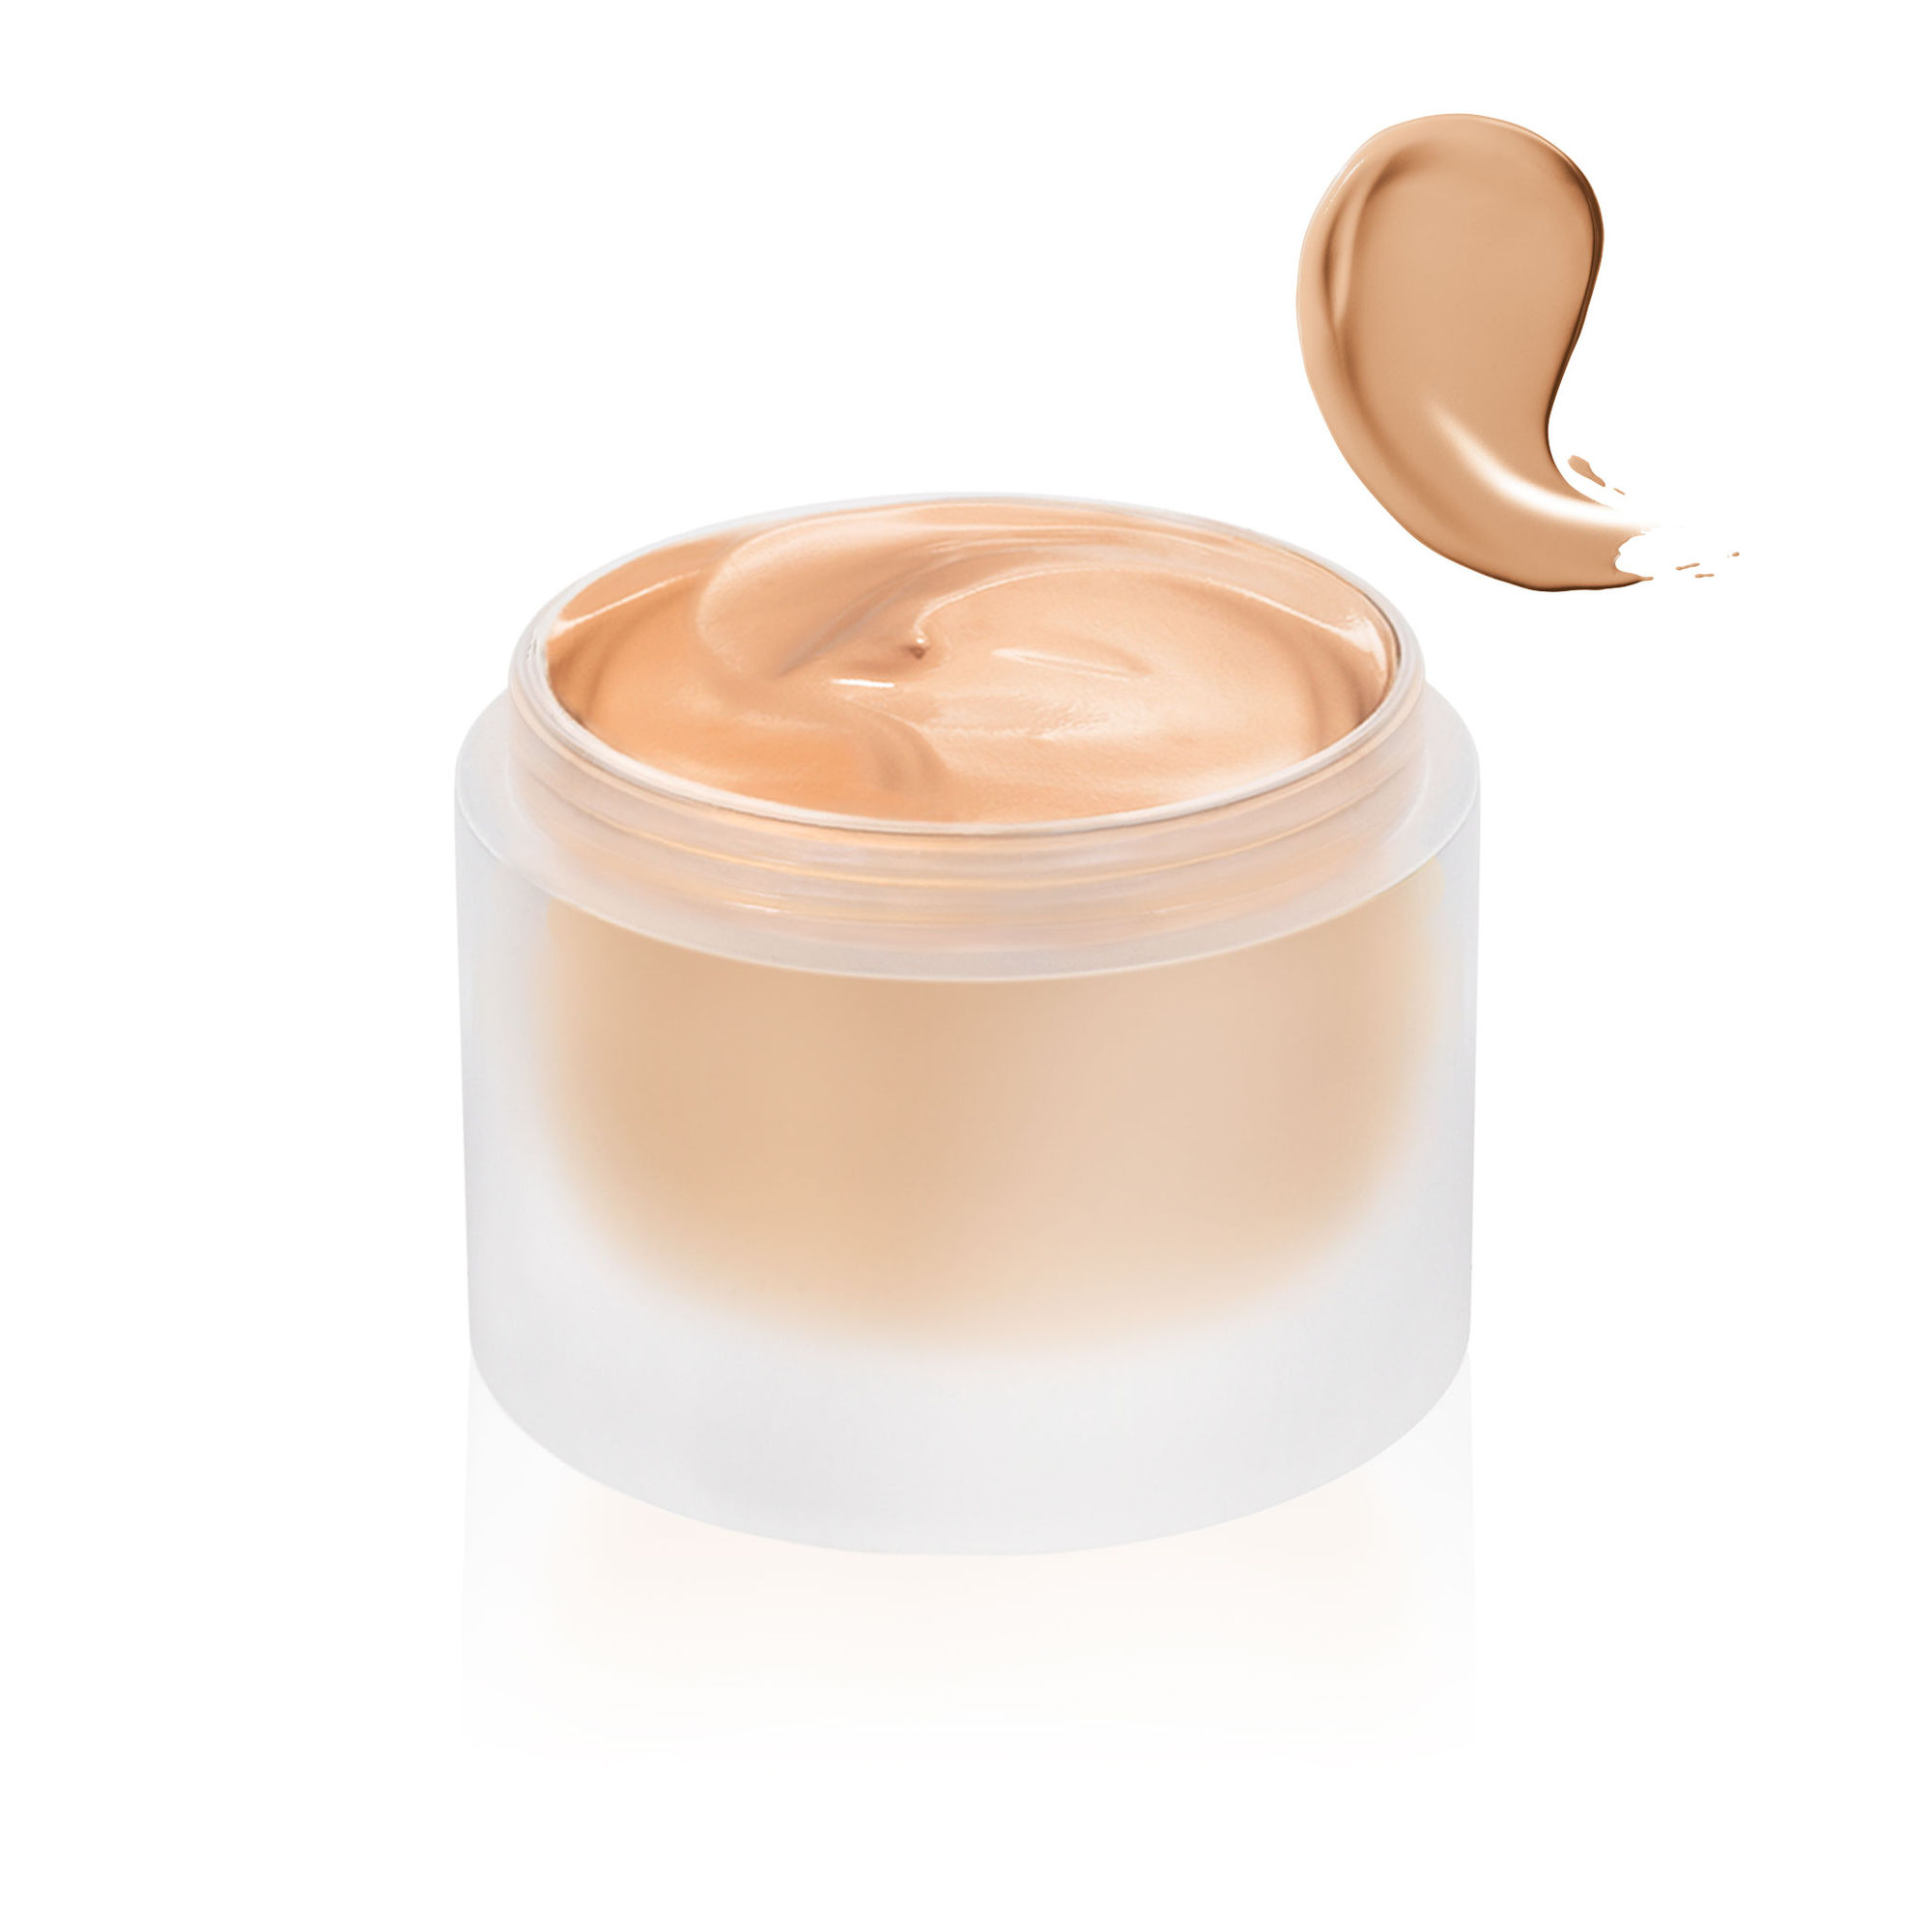 Image of Ceramide Lift and Firm Makeup SPF 15 - Fondotinta 106 Beige